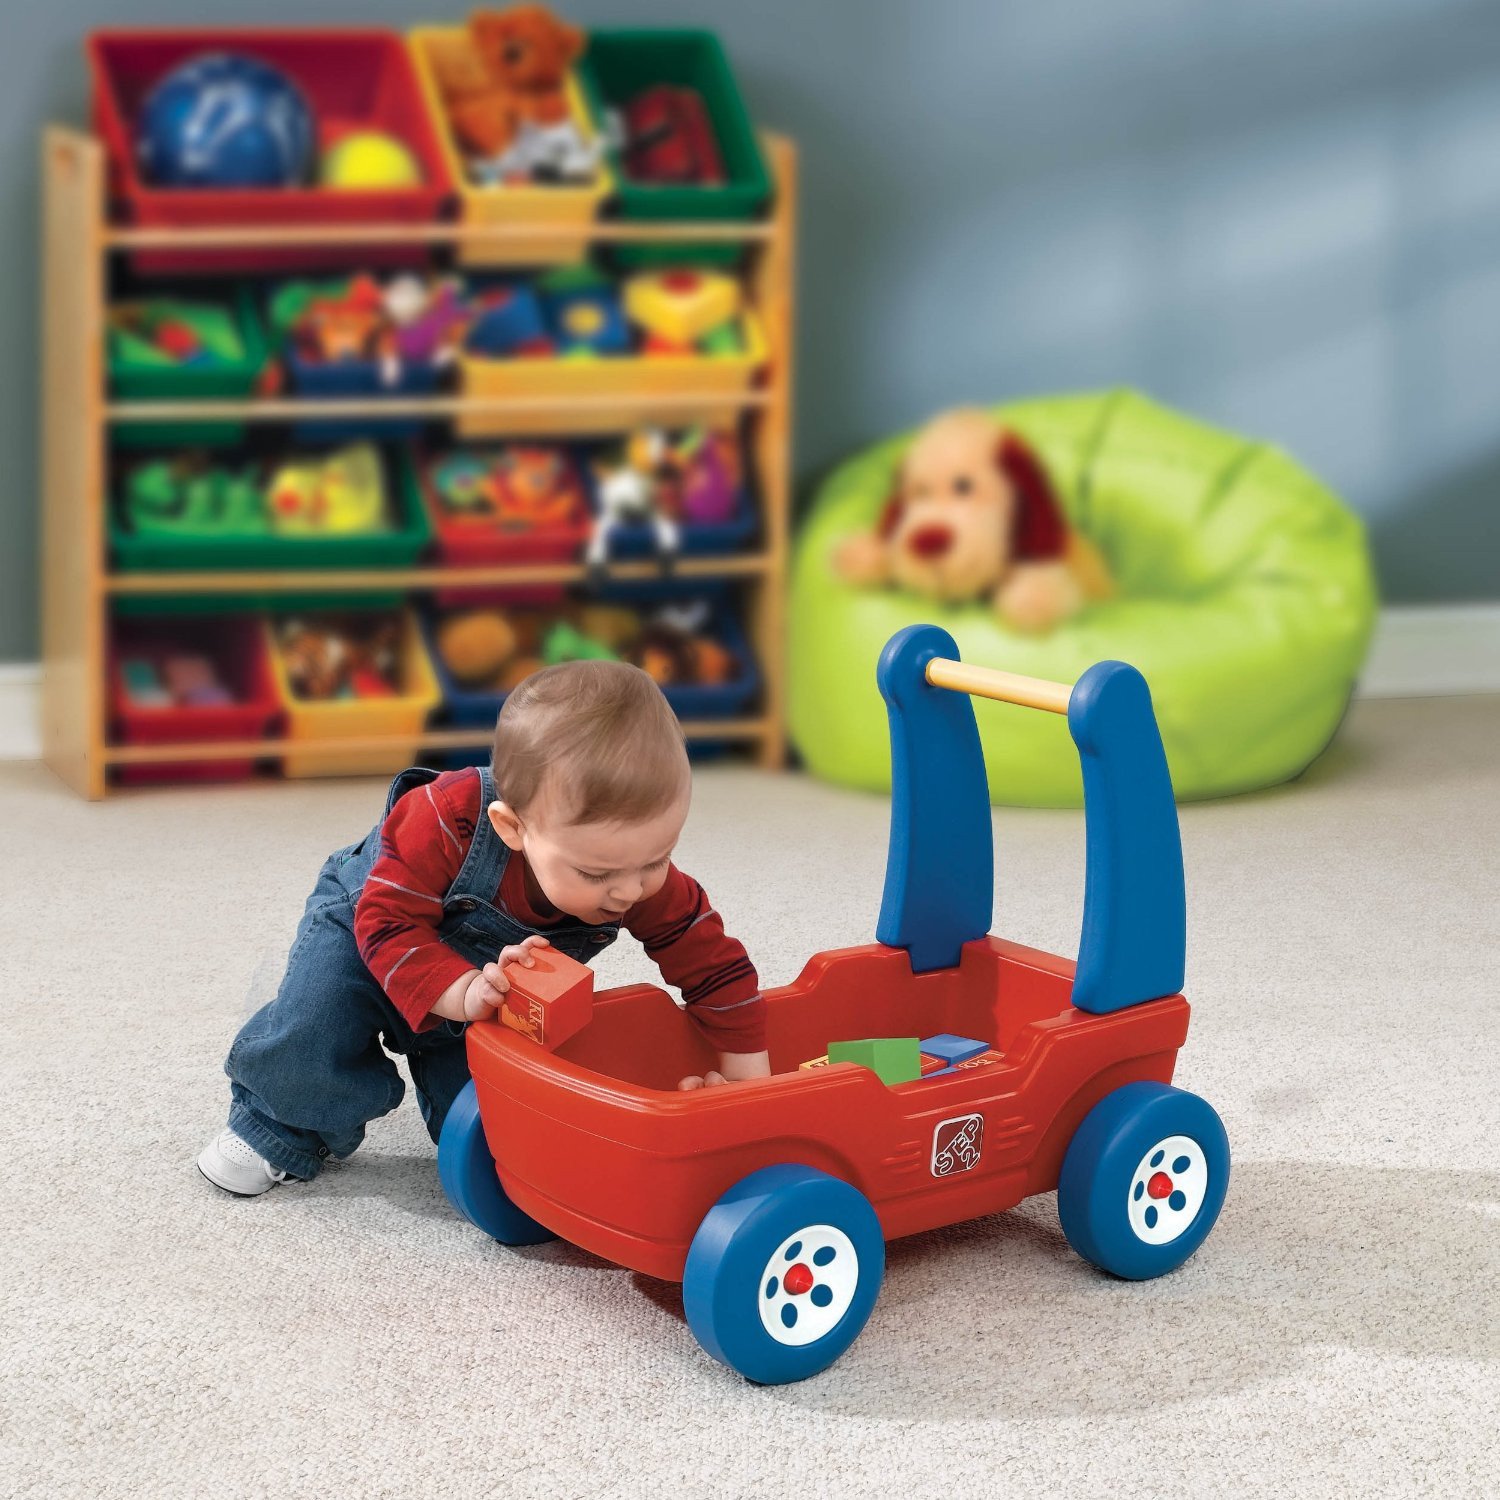 Total Fab Push Toys To Help Baby & Toddlers Walk Independently